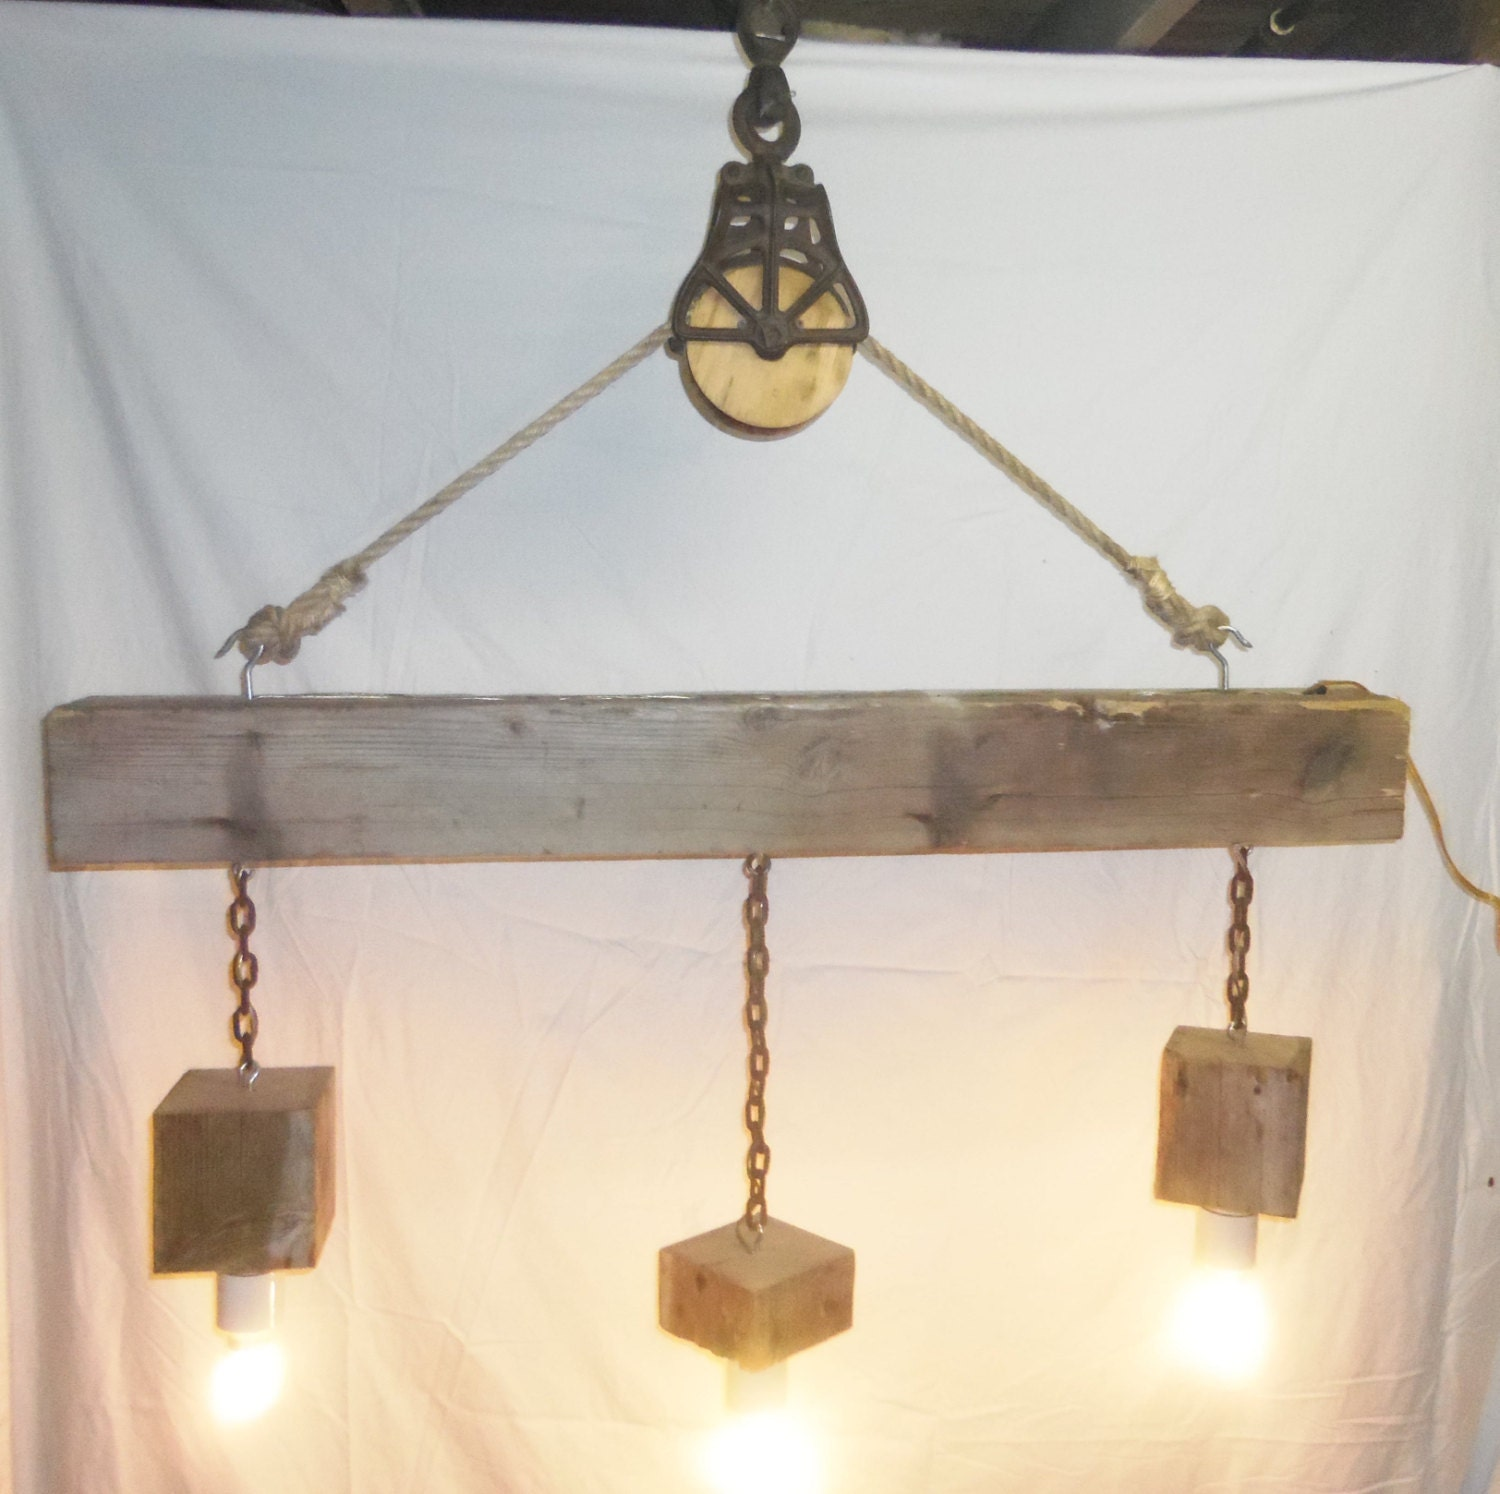 Just Reduced Rustic Handmade 3 Bulb Hanging Light Fixture Or: Reclaimed Barn Beam And Pulley 3 Light Chandelier